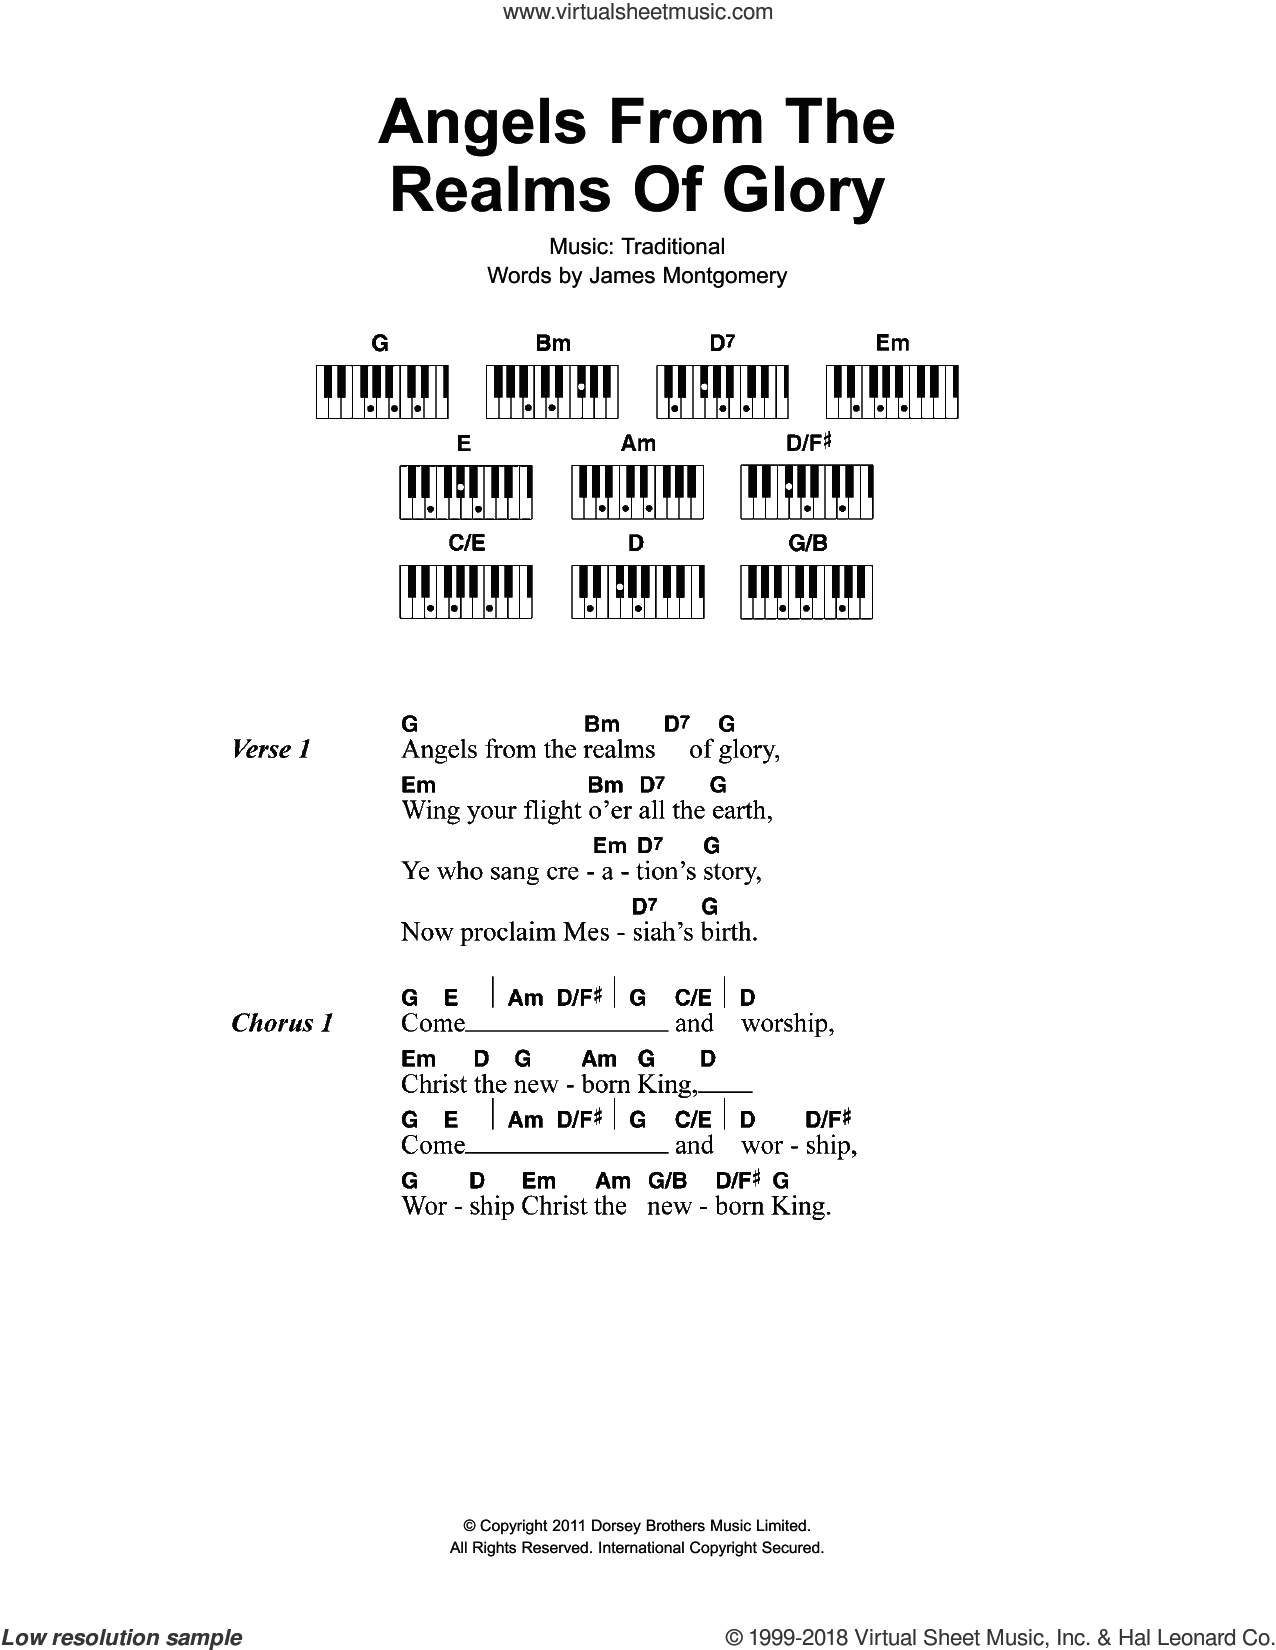 Angels From The Realms Of Glory sheet music for piano solo (chords, lyrics, melody) by James Montgomery and Miscellaneous. Score Image Preview.